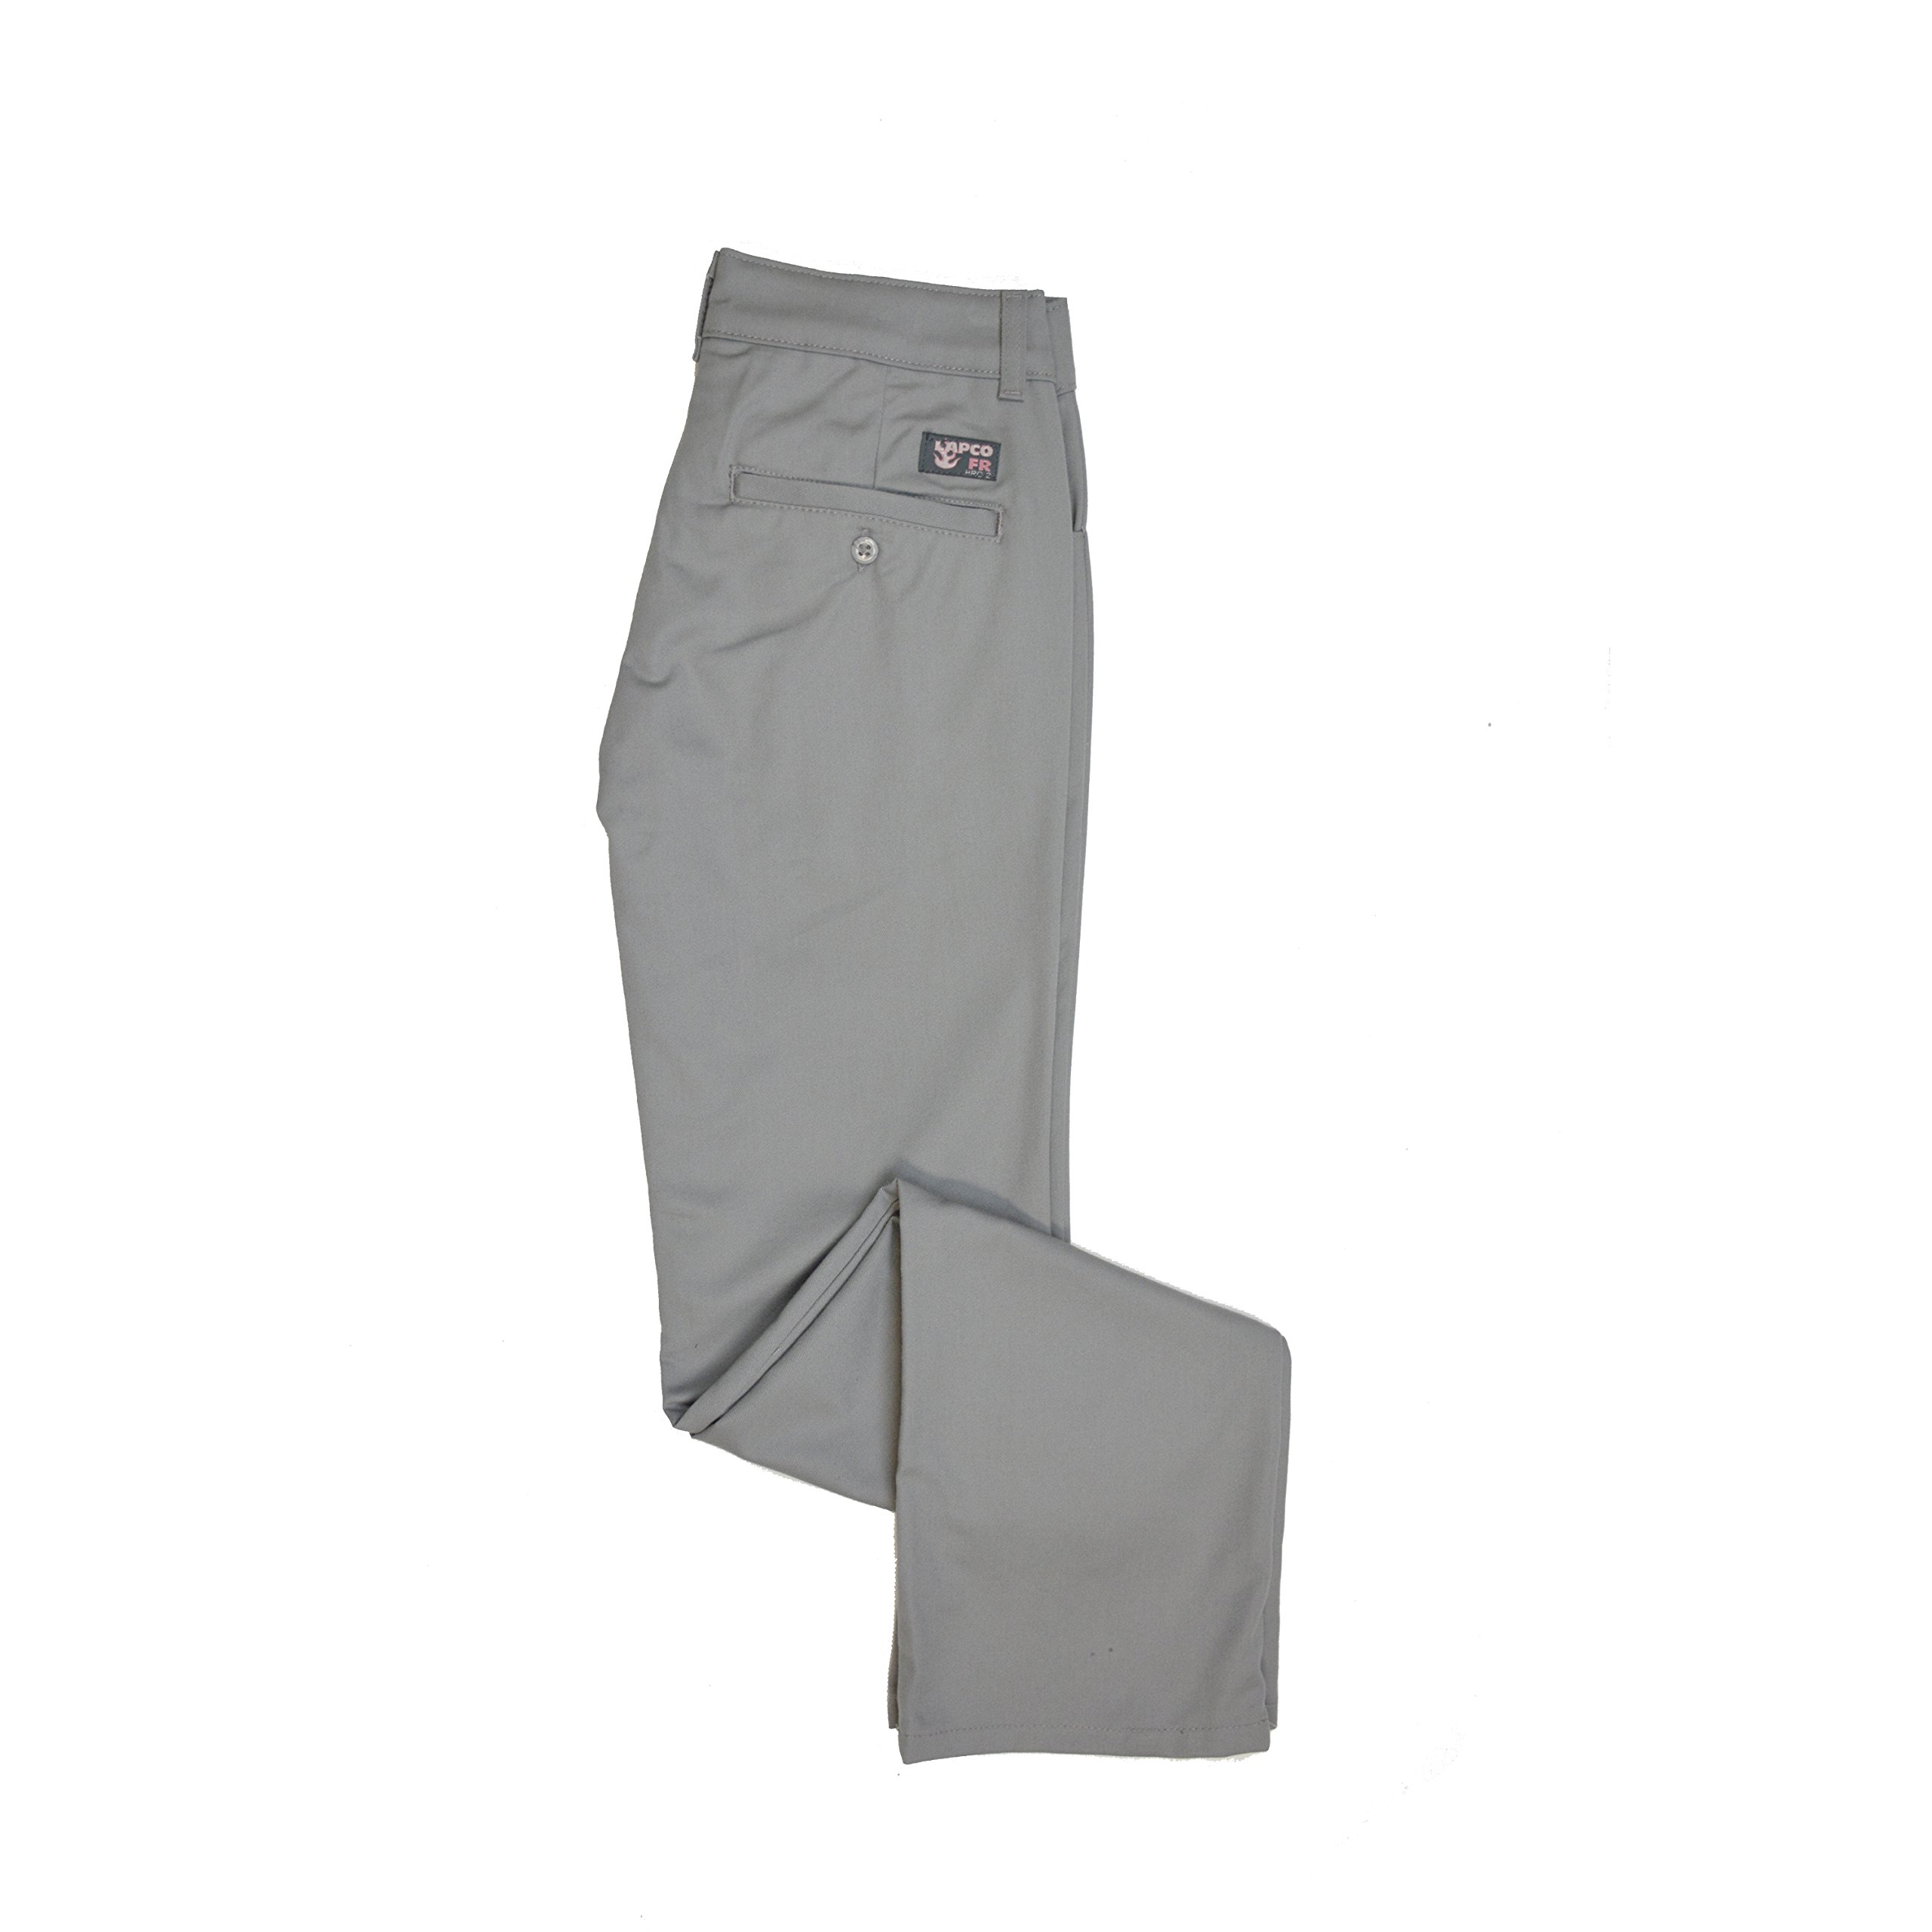 Lapco FR L-PFRACGY 10RG Ladies FR Advanced Comfort Uniform Pants, 88% Cotton, 12% Nylon, 7 oz, 10RG, Gray by Lapco FR (Image #1)